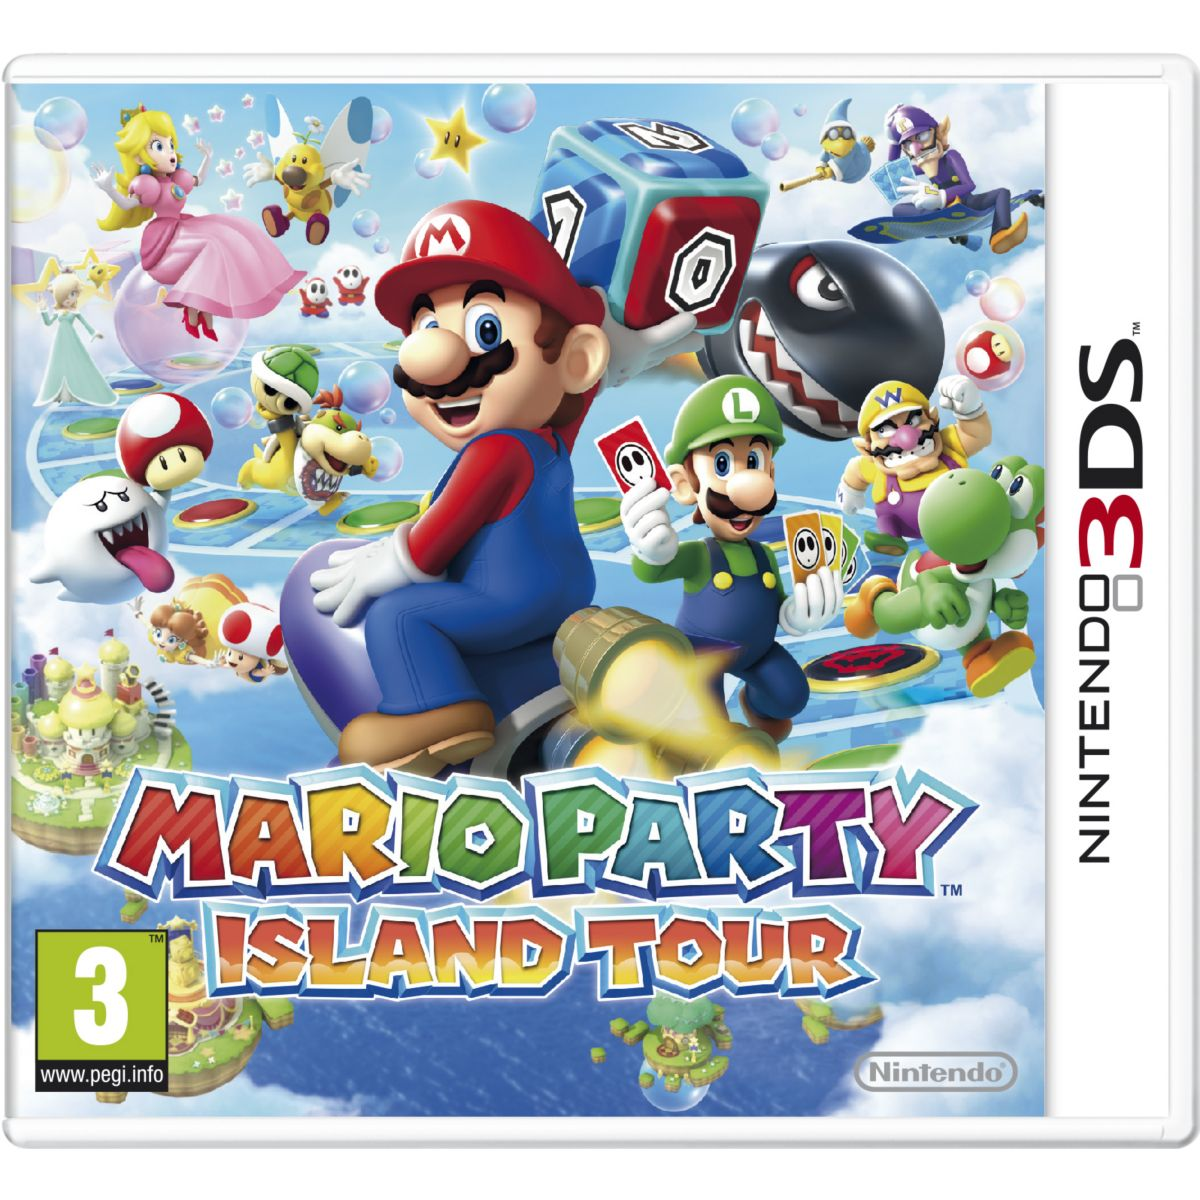 Jeu 3ds nintendo mario party island tour selects - 2% de remise immédiate avec le code : cool2 (photo)